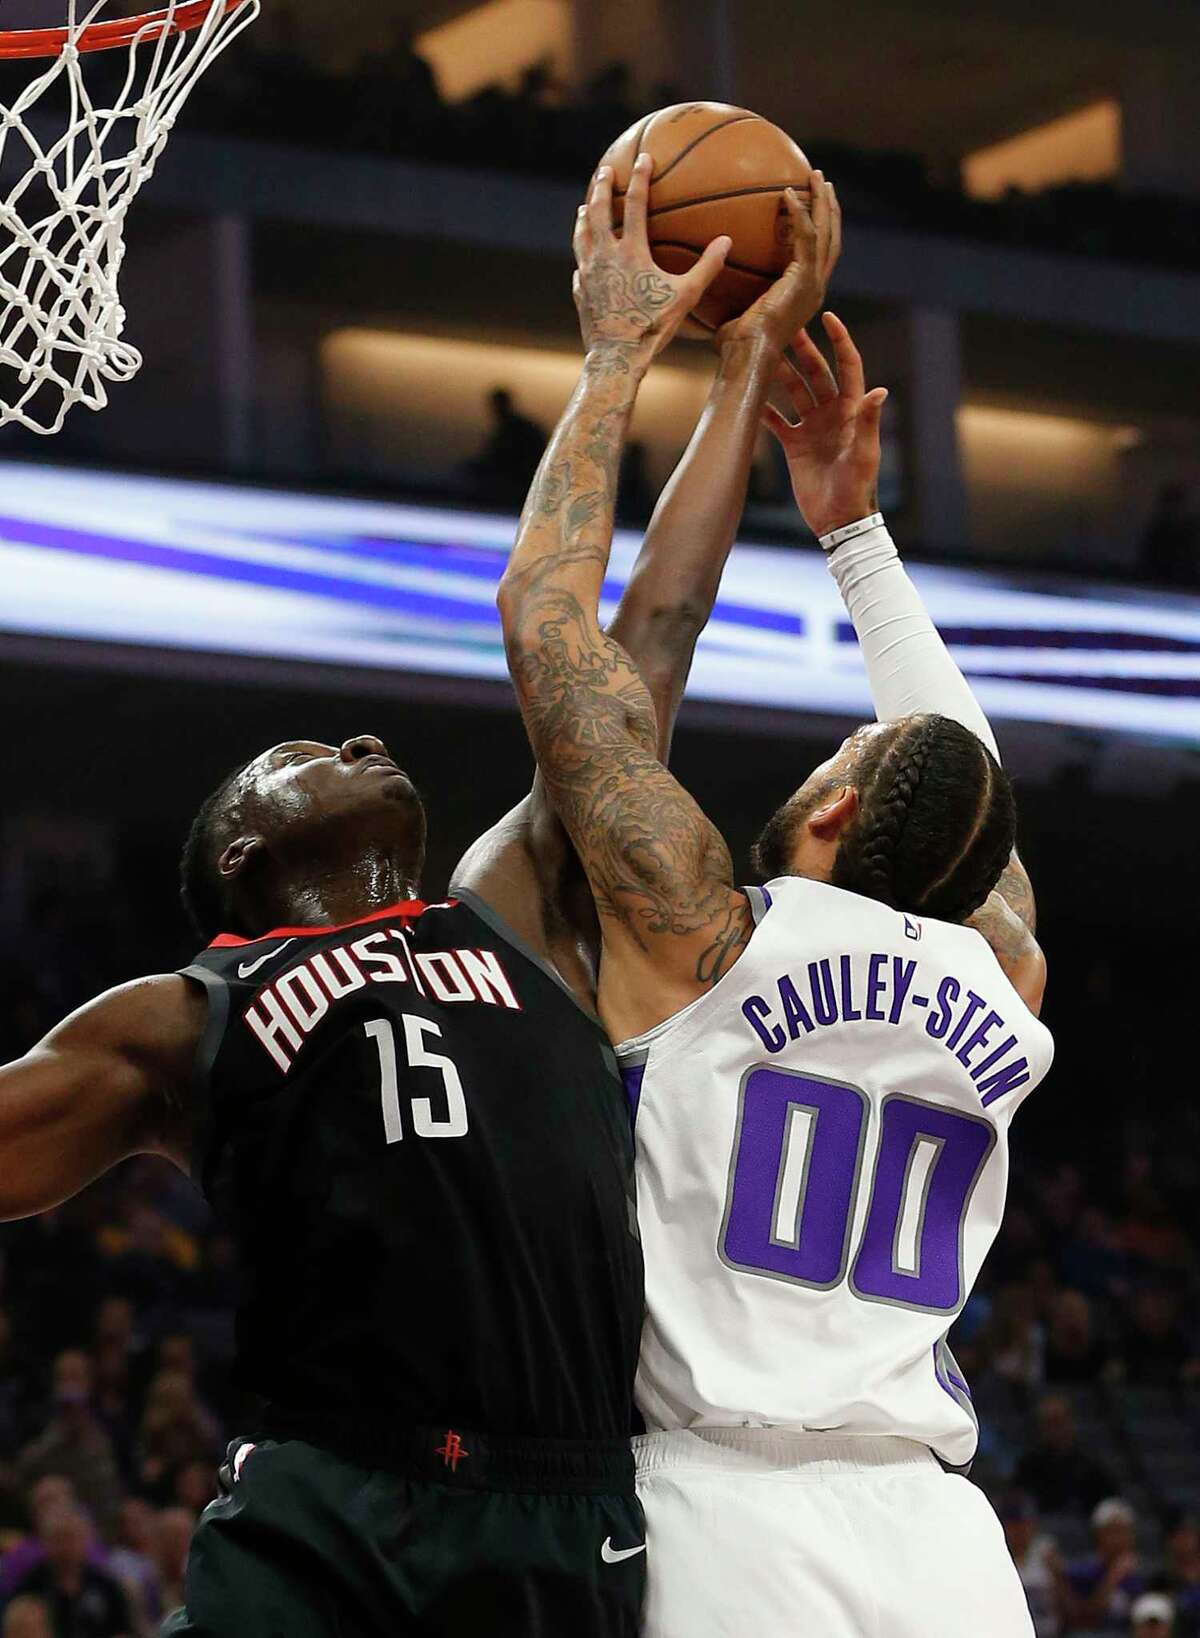 Houston Rockets center Clint Capela, left, and Sacramento Kings center Willie Cauley-Stein, right, battle for a rebound during the first quarter of an NBA basketball game, Tuesday, April 2, 2019, in Sacramento, Calif.(AP Photo/Rich Pedroncelli)